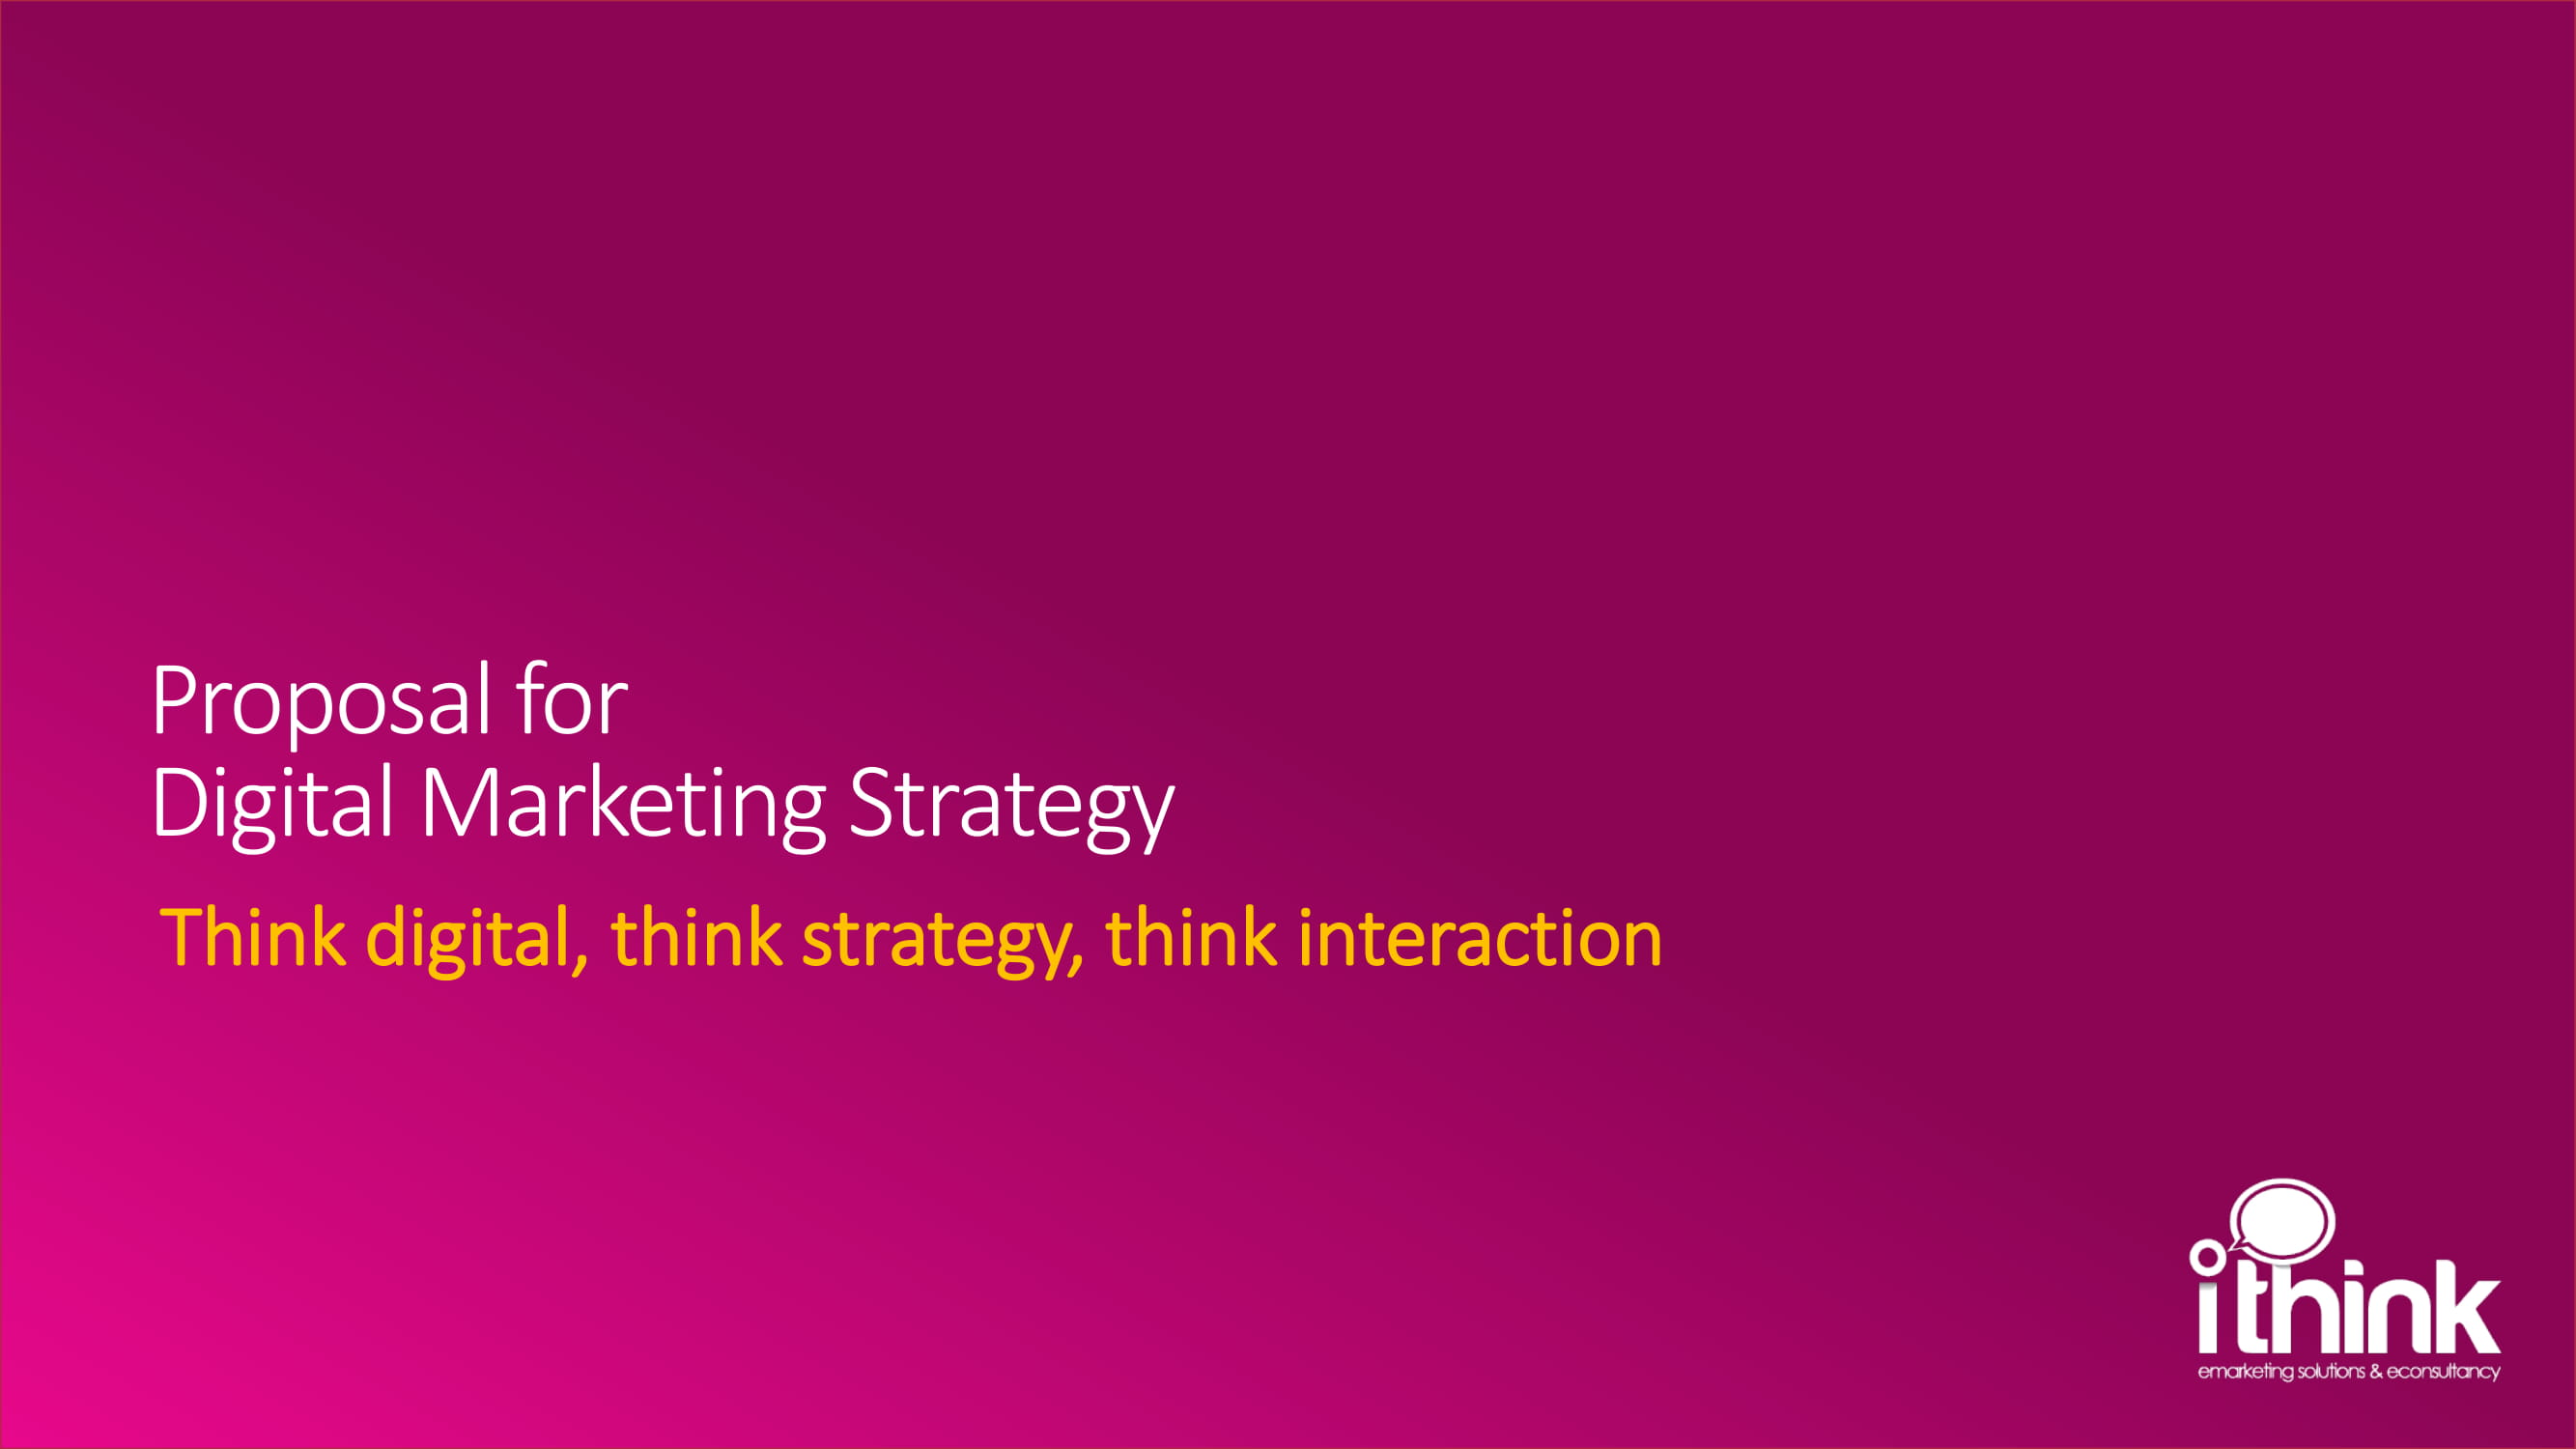 digital marketing campaign strategy proposal example